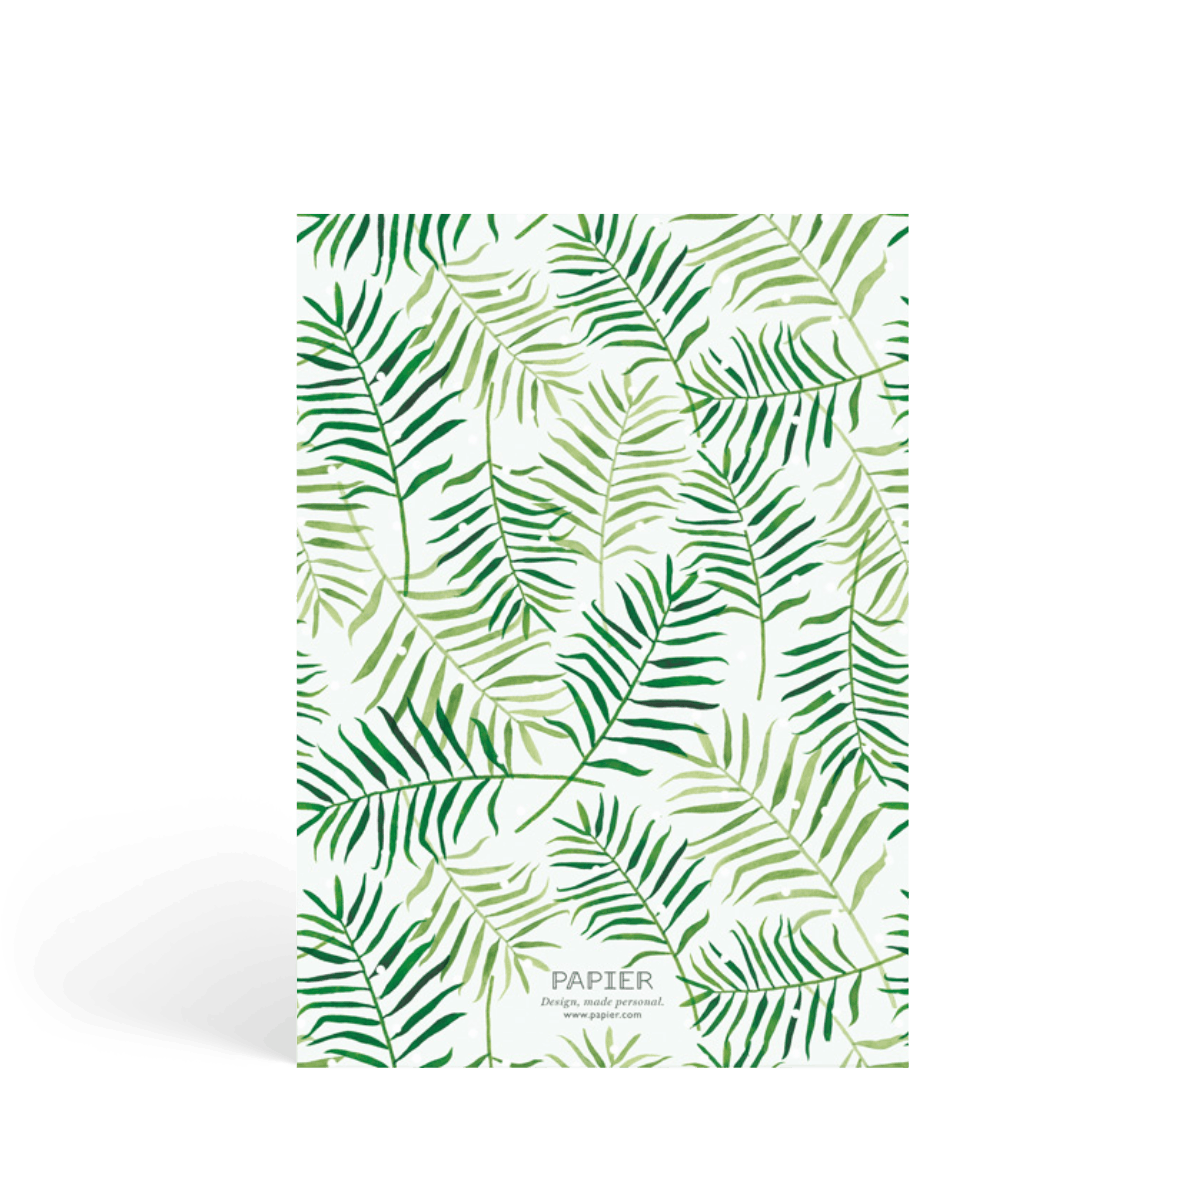 Https%3a%2f%2fwww.papier.com%2fproduct image%2f90919%2f5%2fpalm leaves 22743 back 1570115540.png?ixlib=rb 1.1